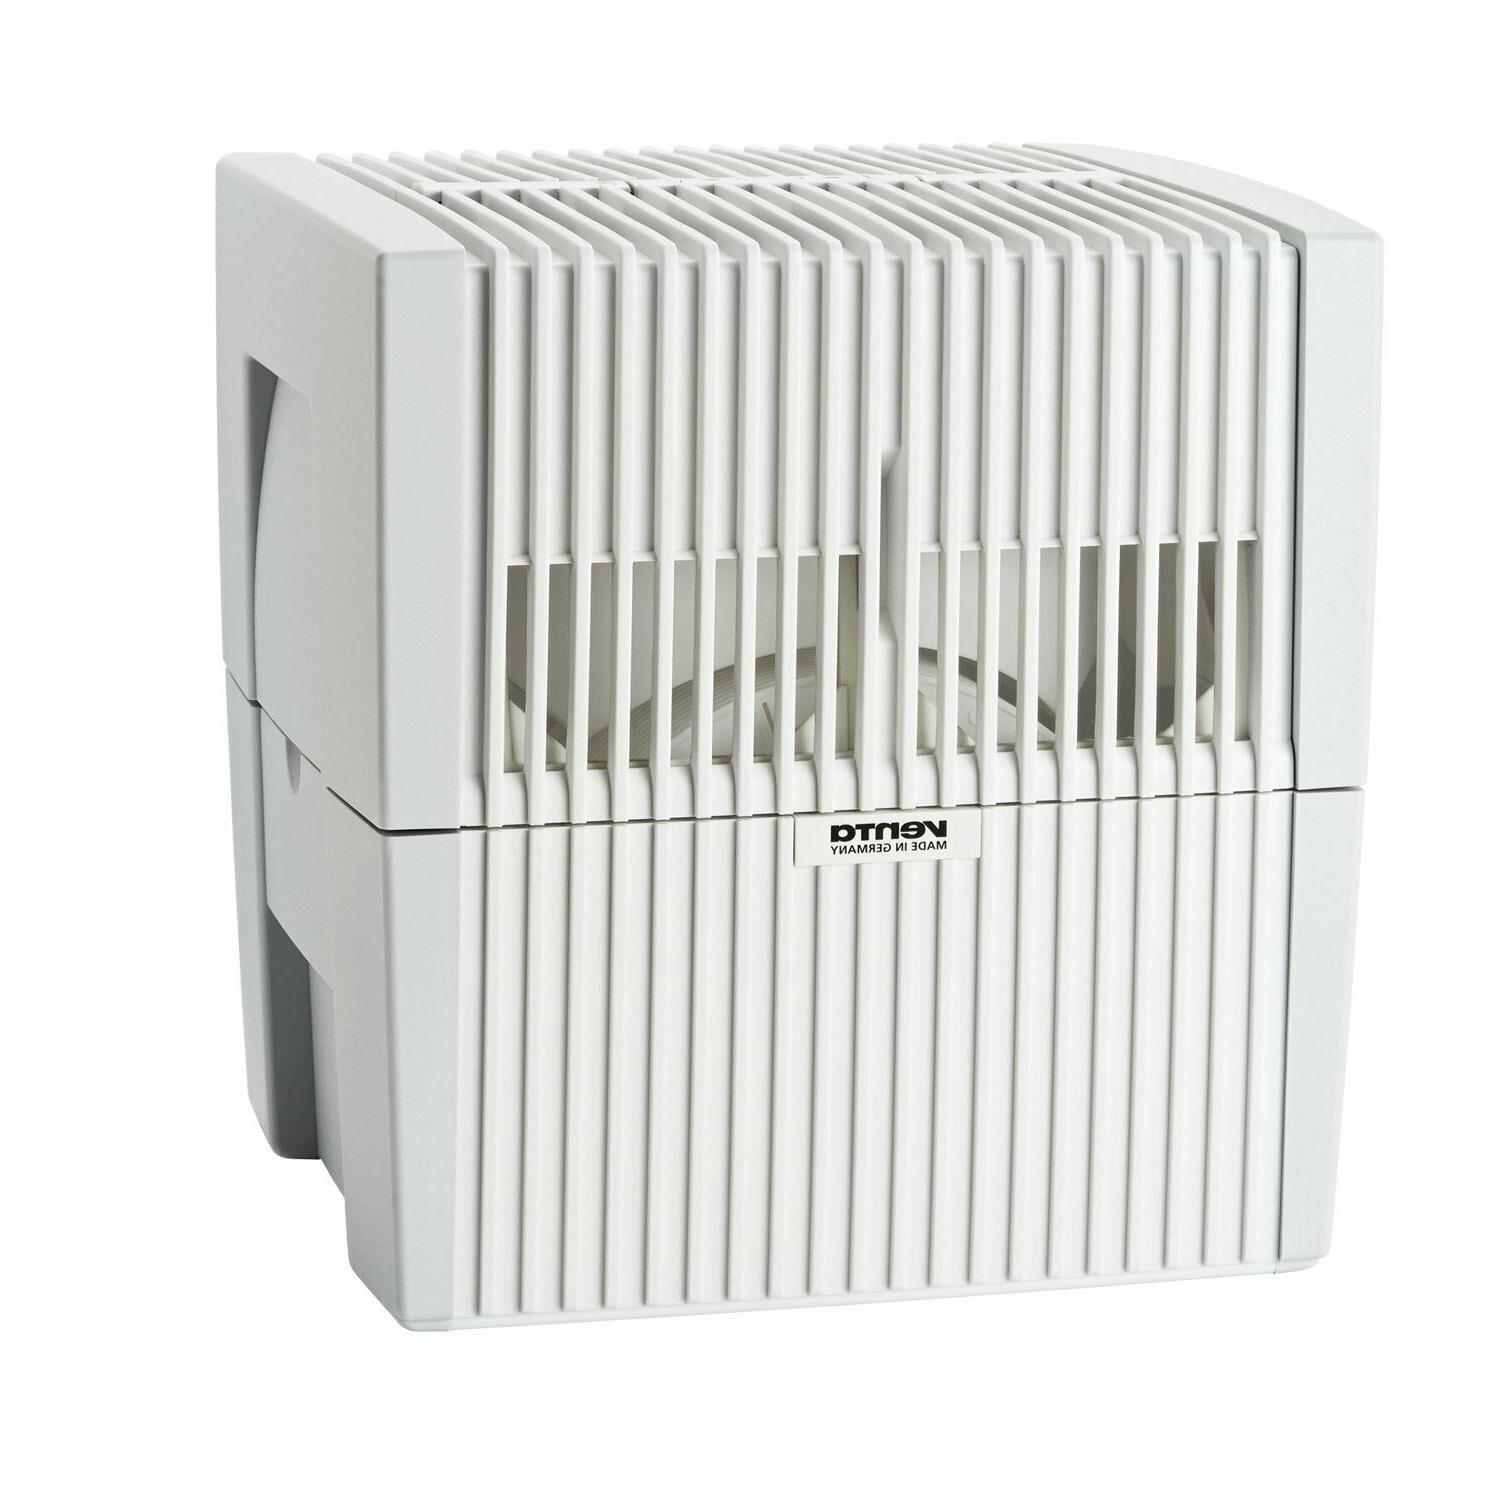 Venta - Air Purifier - White, Gray